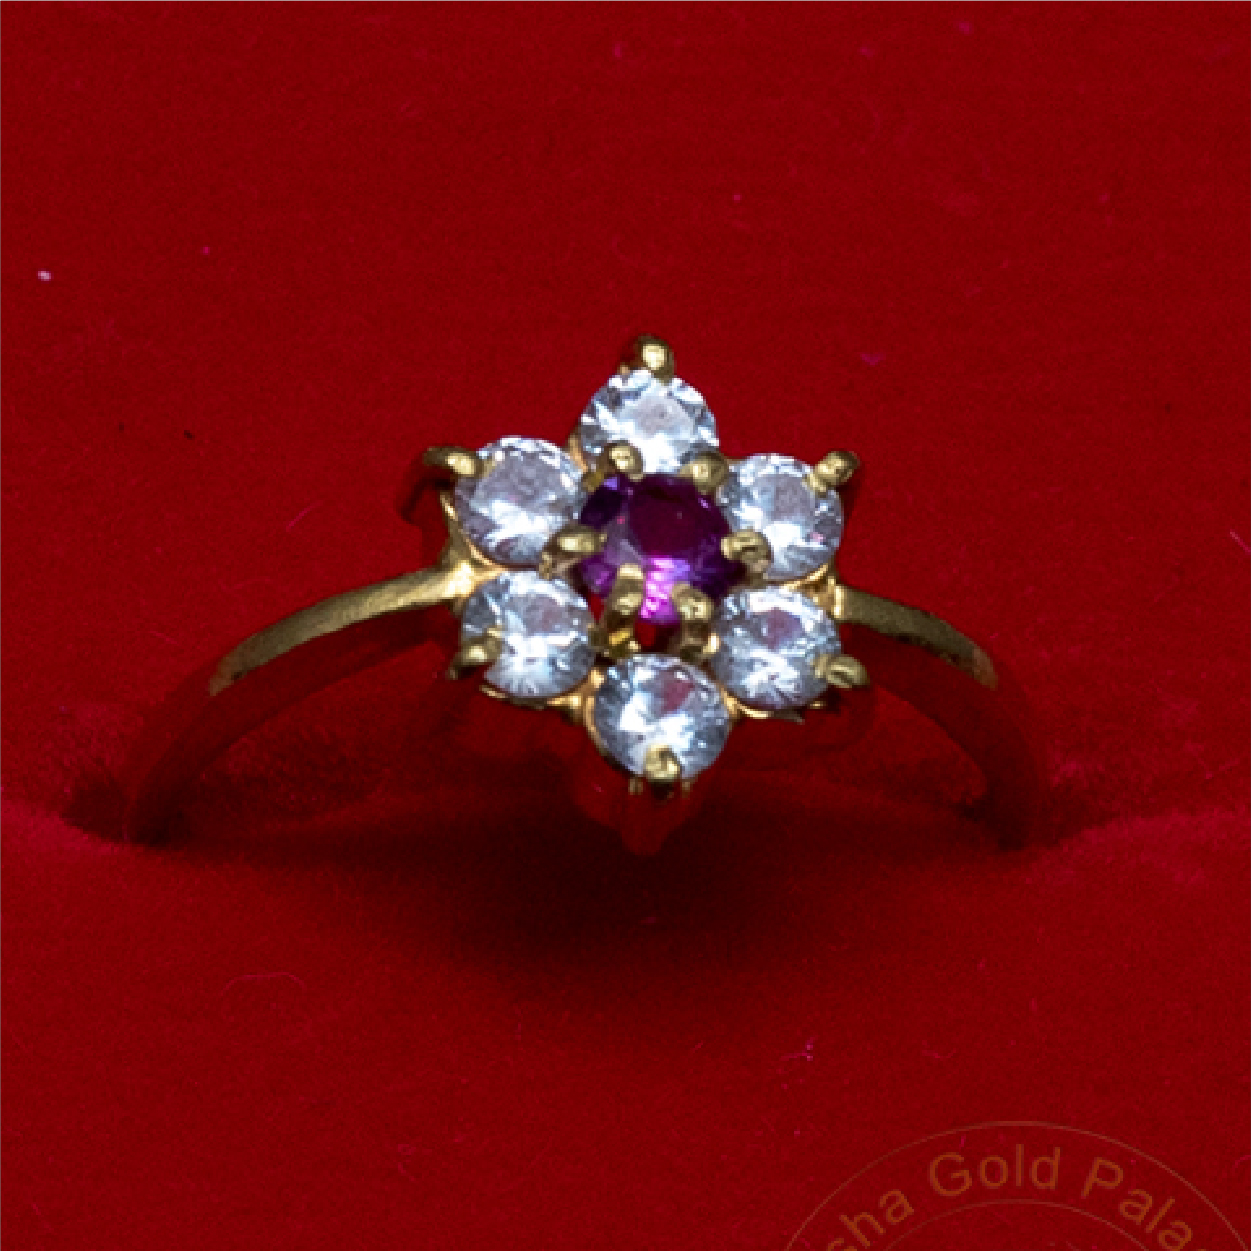 Flower Shaped Ring with Stones